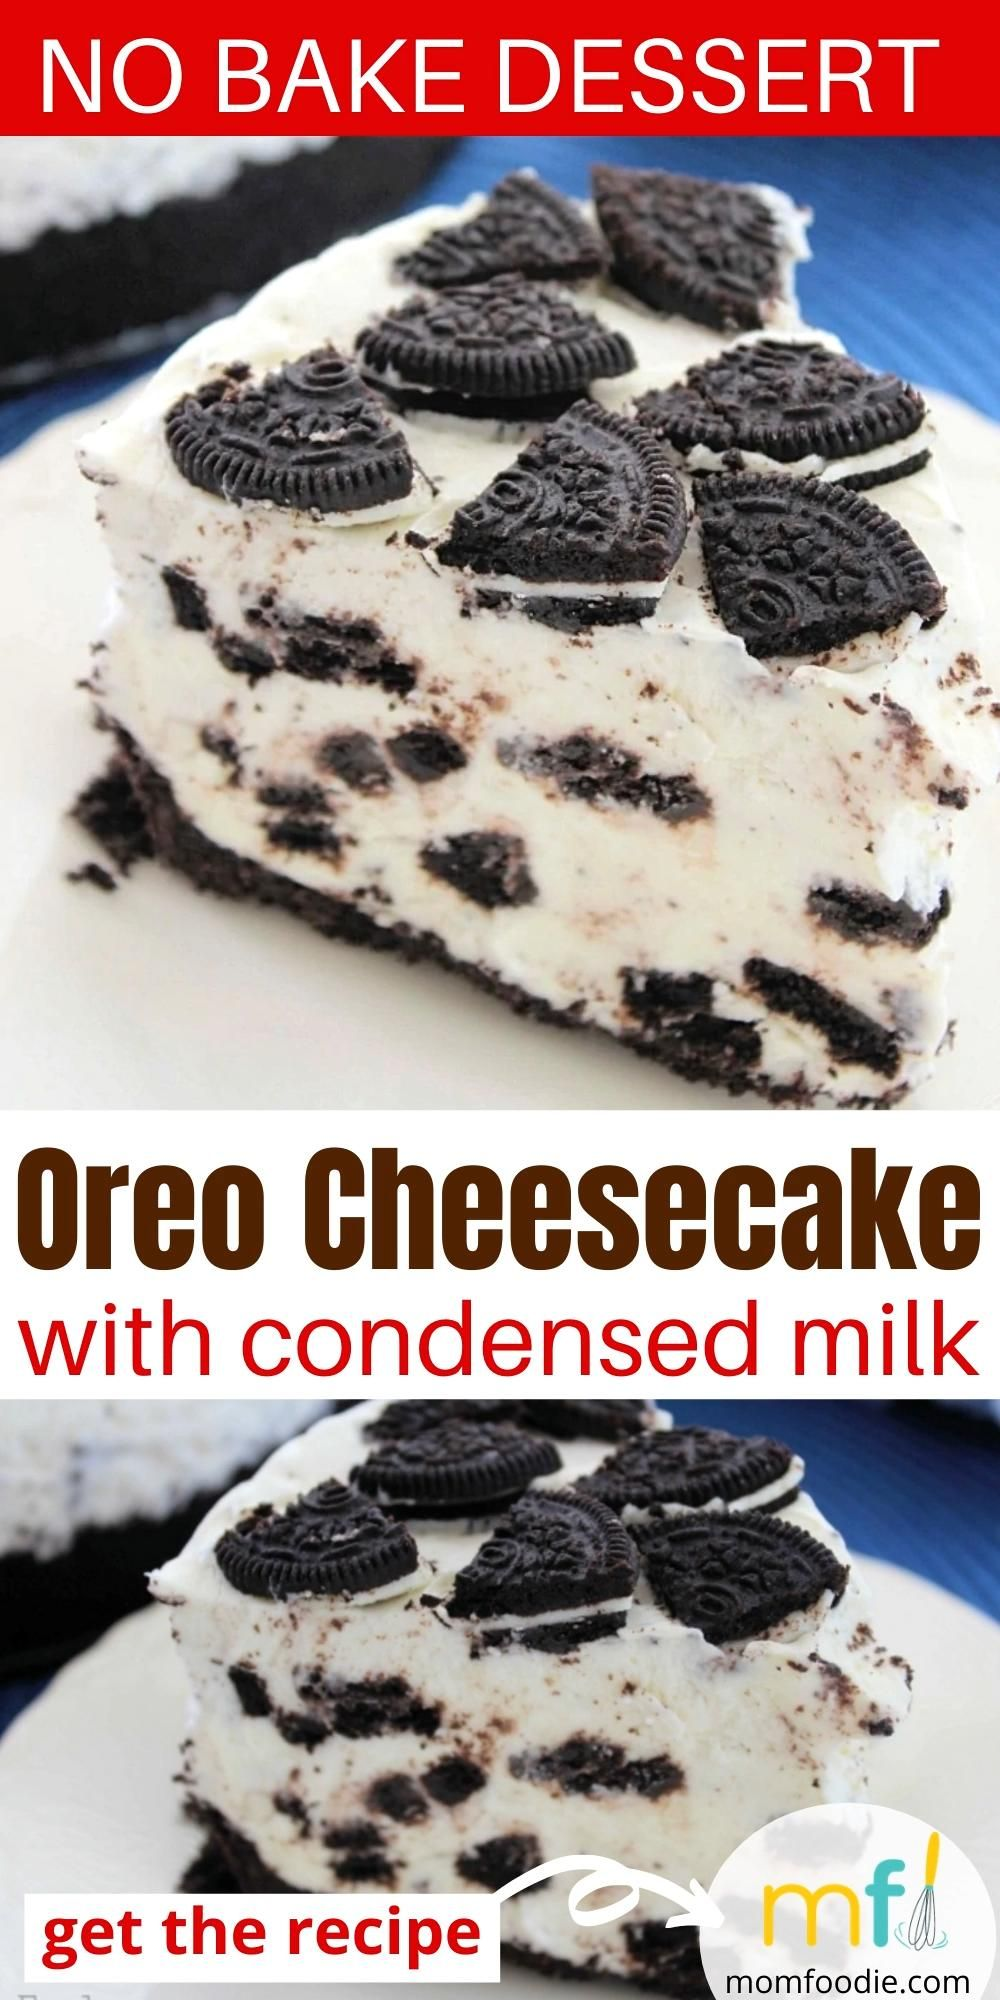 Oreo Cheesecake Recipe With Condensed Milk Video In 2020 Cheesecake Recipes No Bake Desserts Oreo Cheesecake Recipes